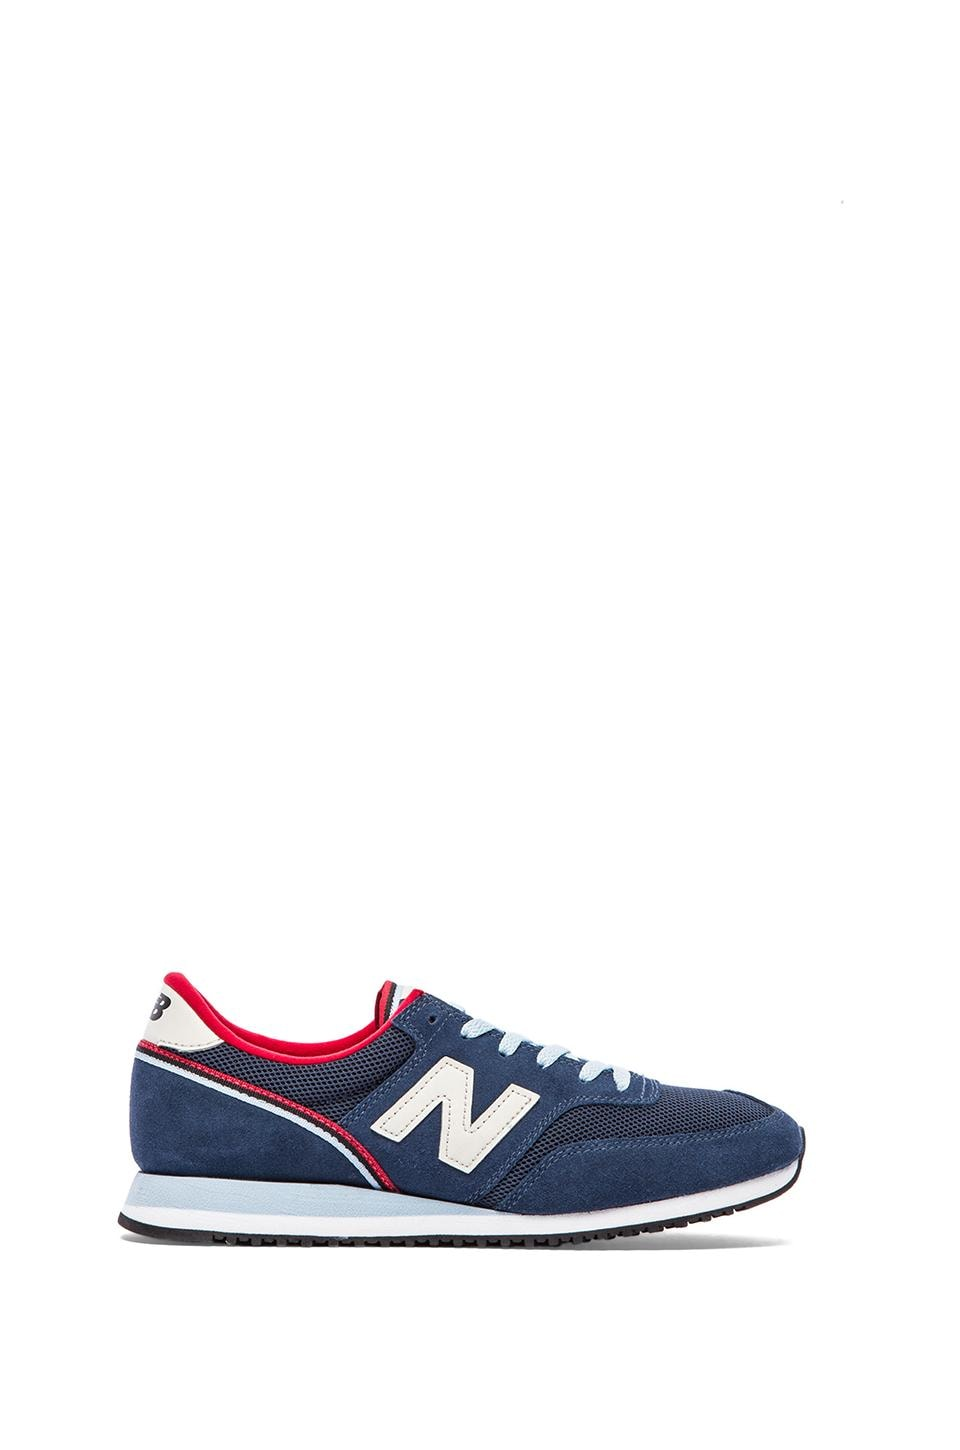 New Balance CM620 in Blue